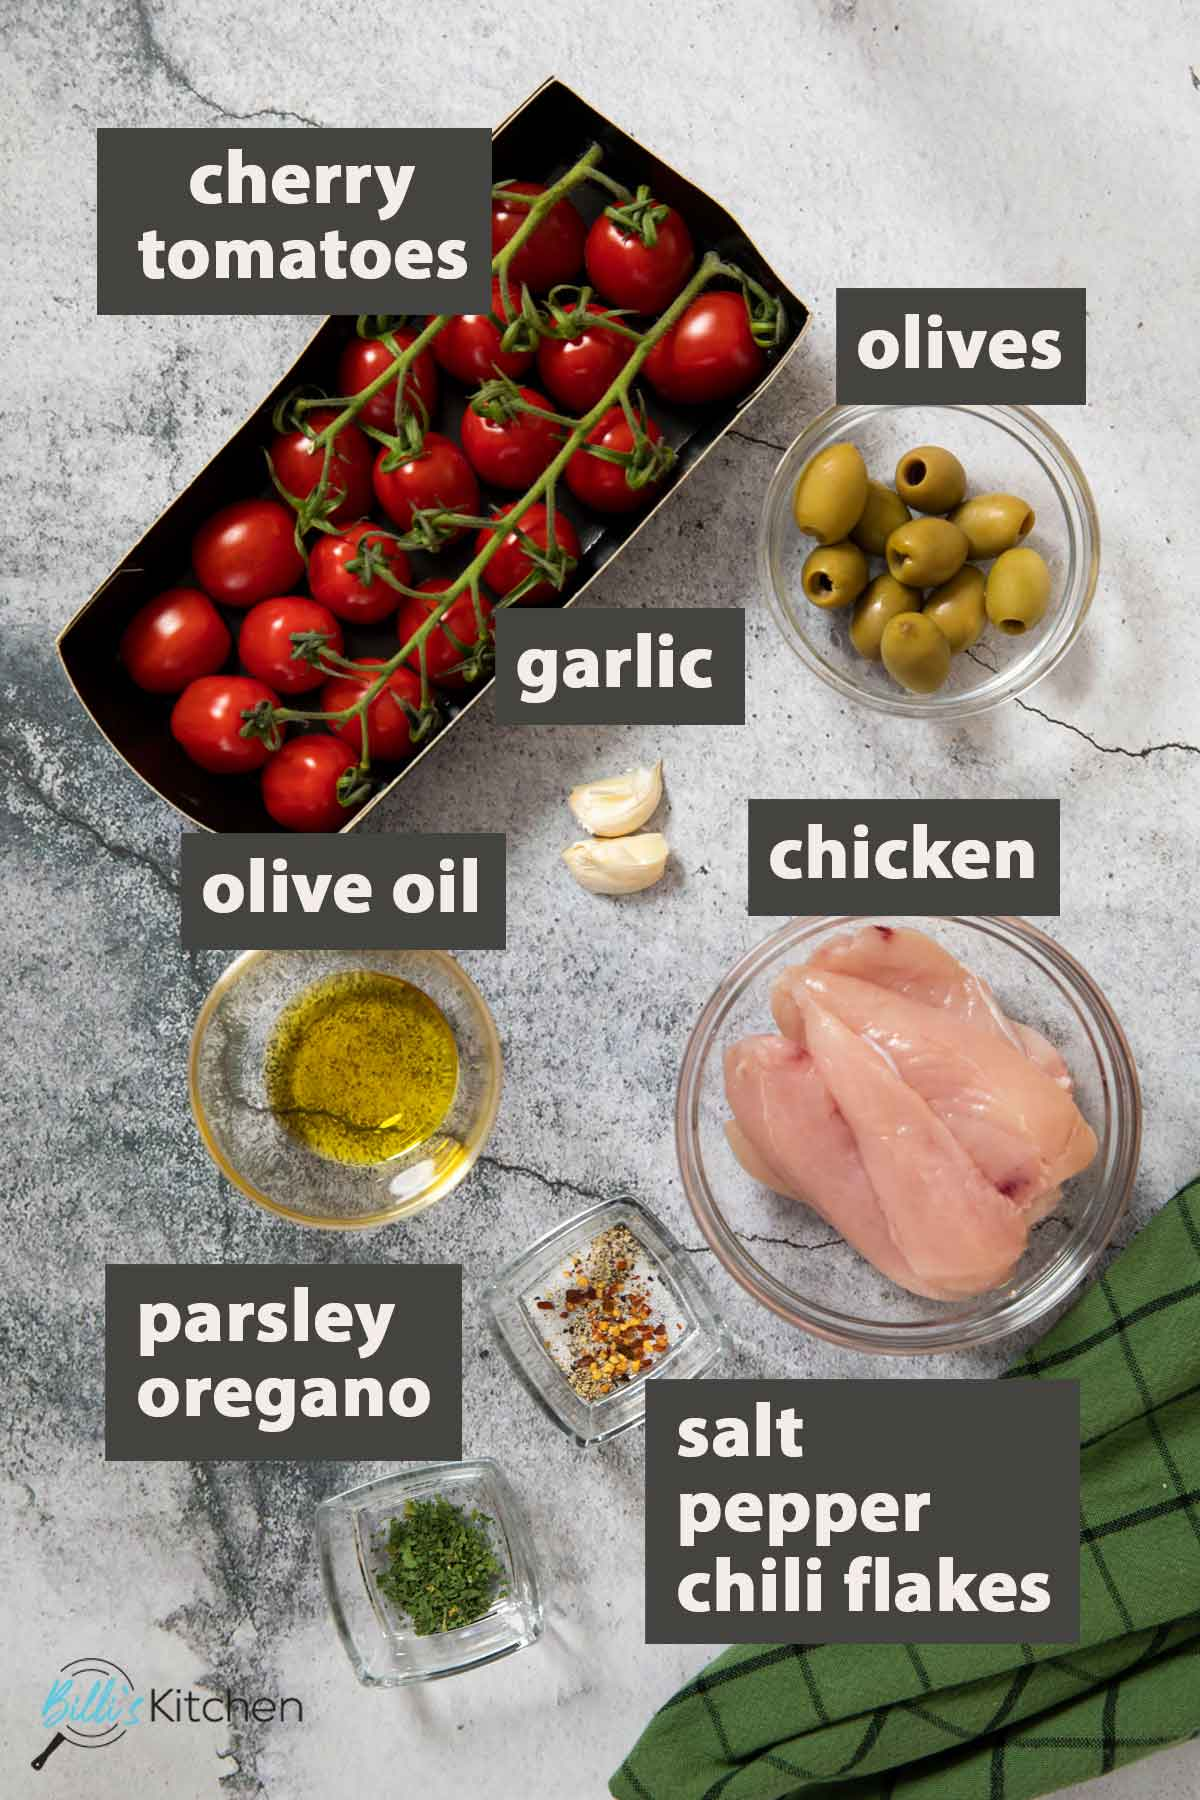 Image showing all the ingredients you need to prepare chicken with cherry tomatoes at home.